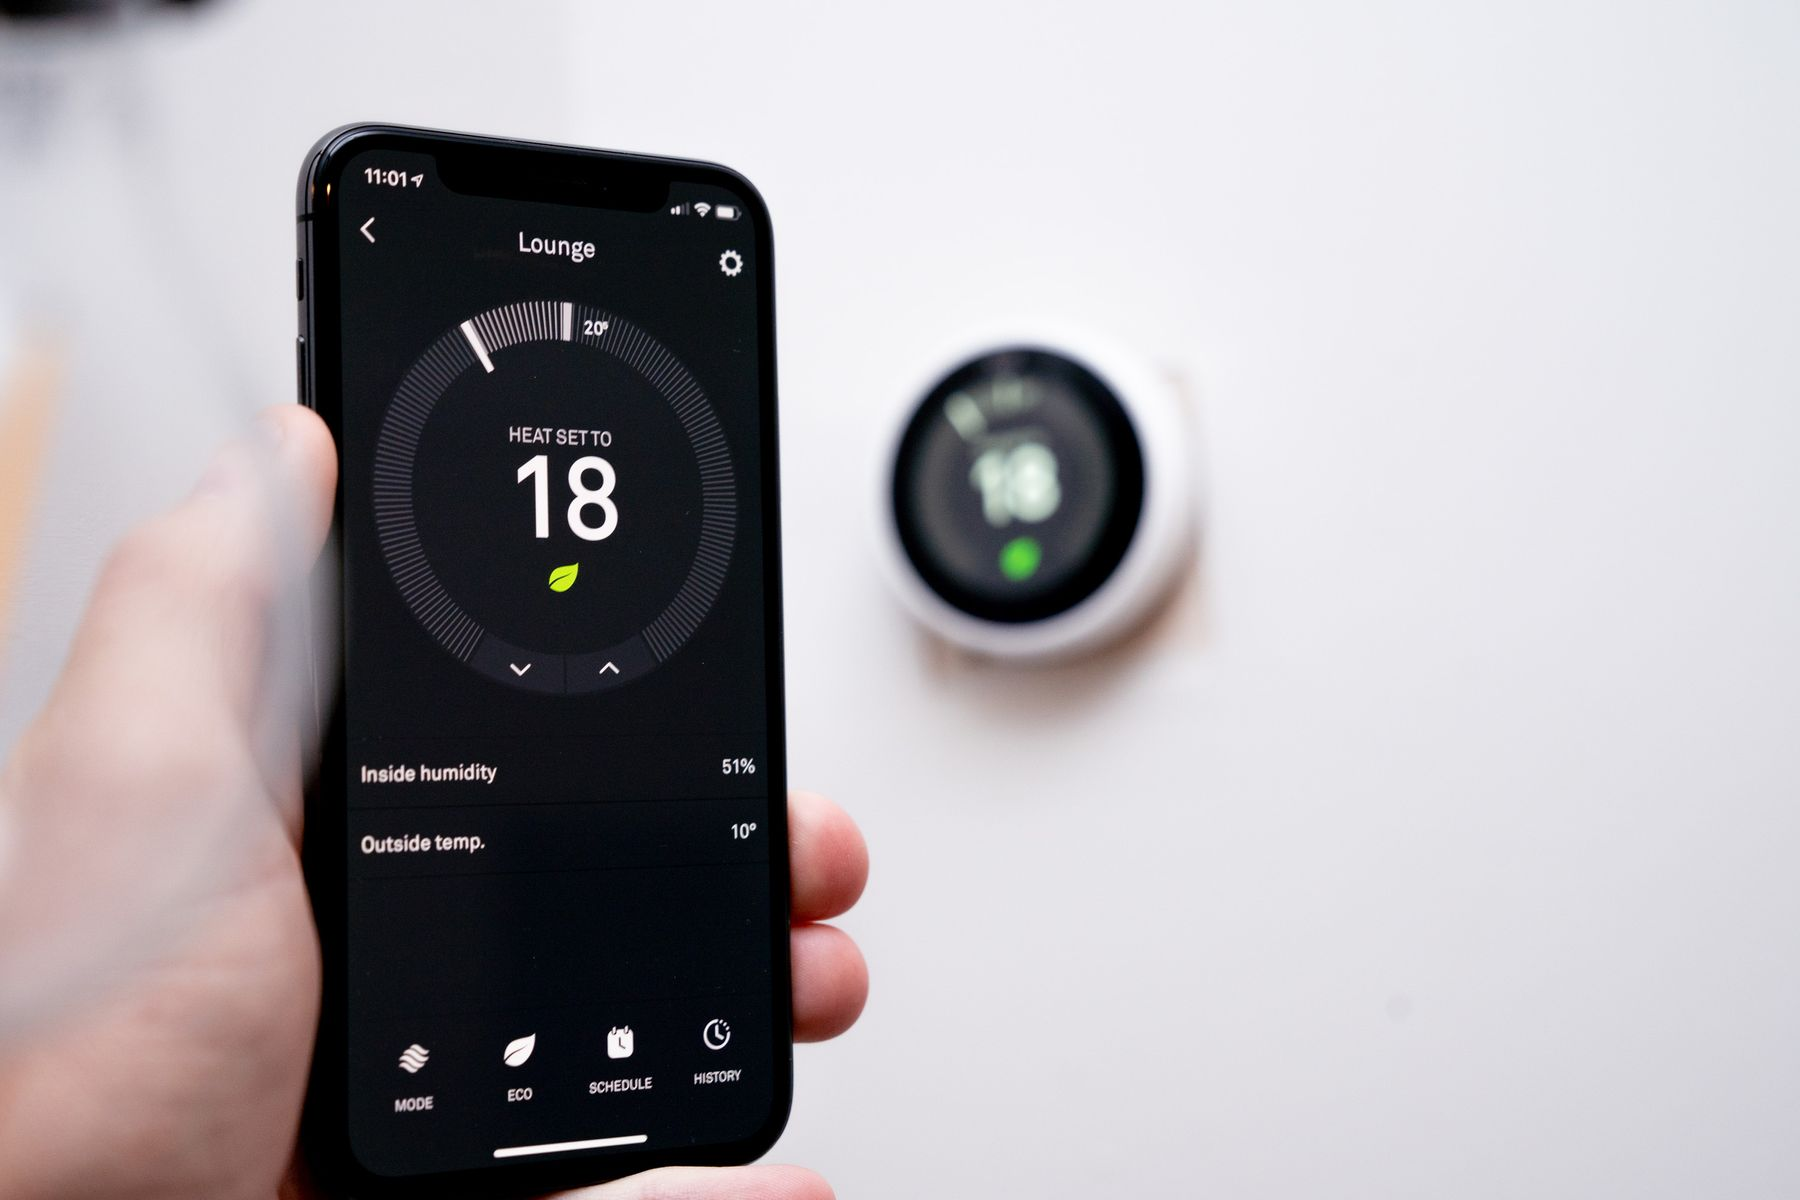 A phone with an app that controls a smart thermostat